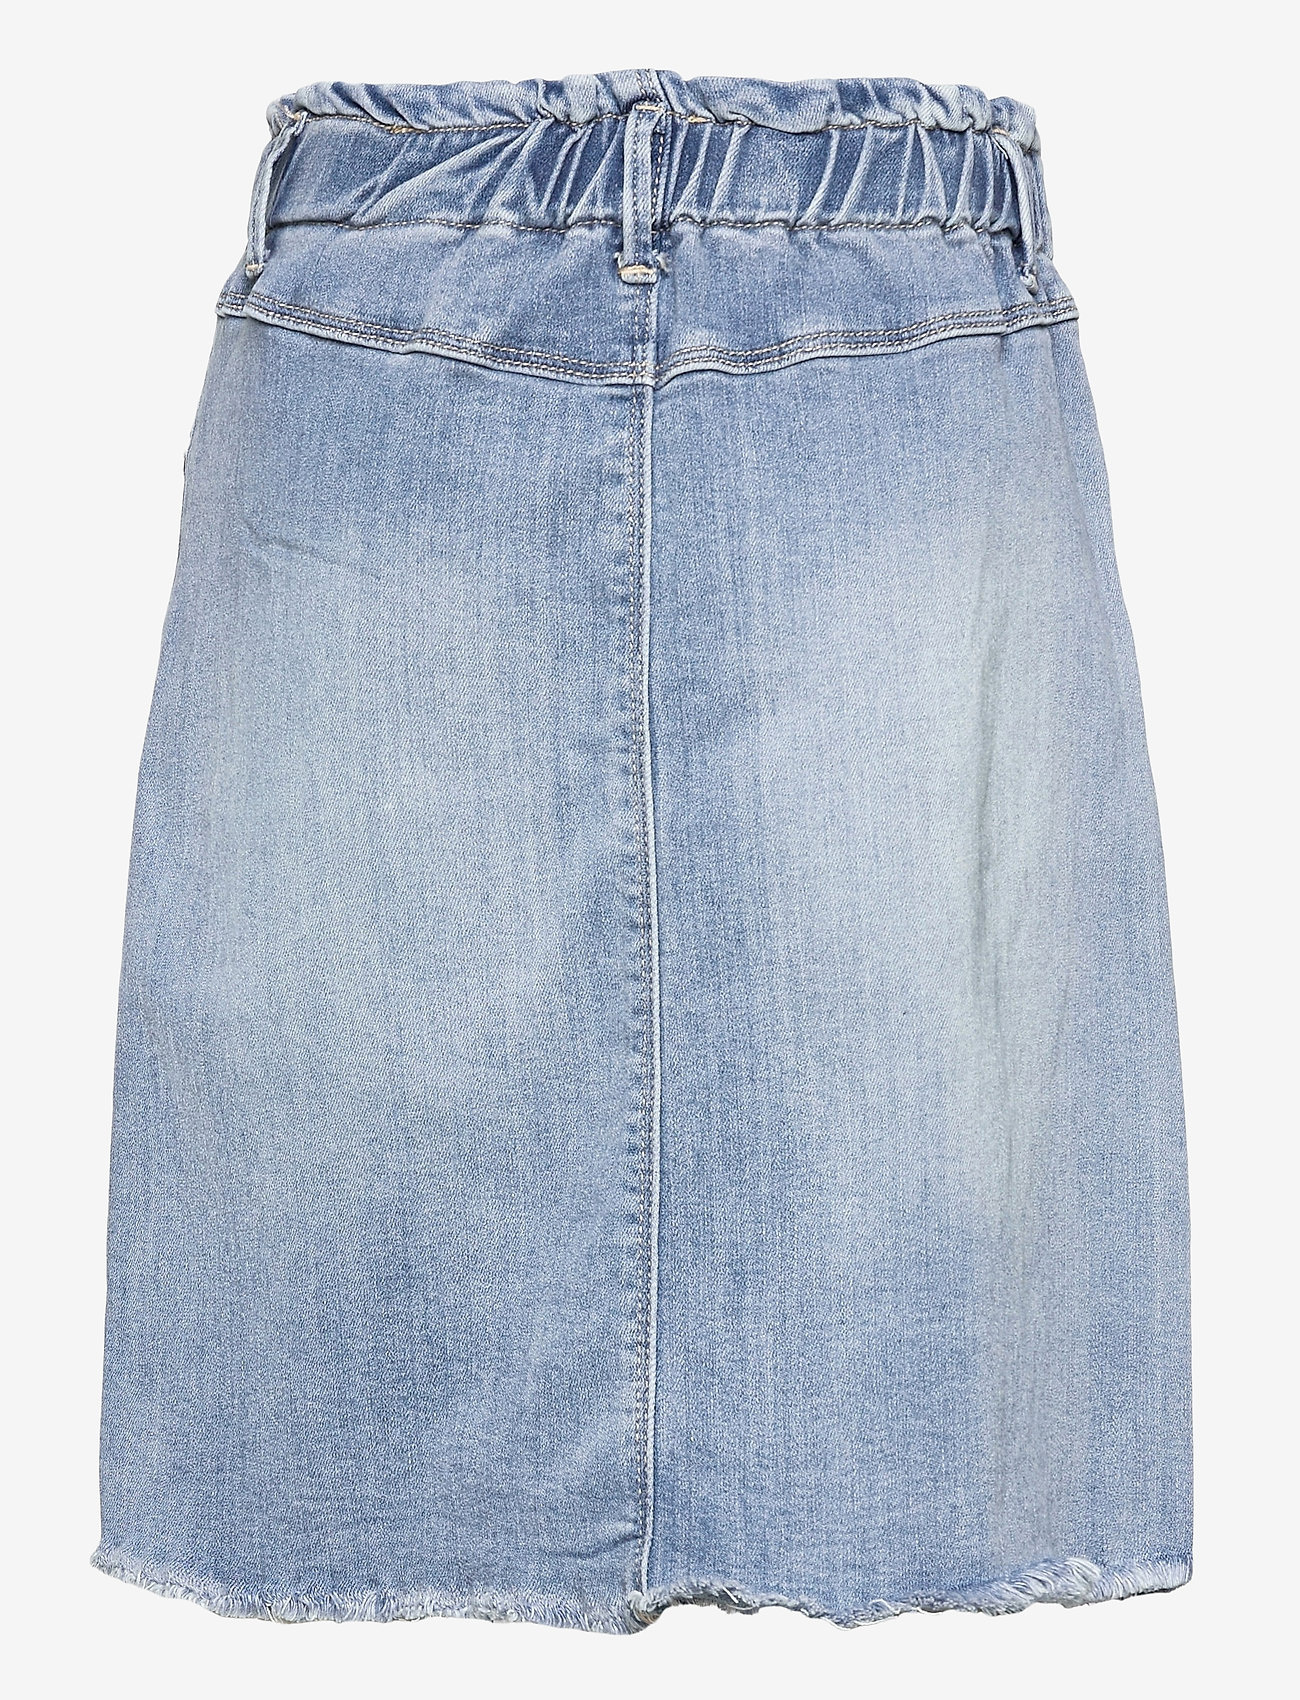 LMTD - NLFRAVEN DNMATASPERS 1467 HW A SKIRT - röcke - light blue denim - 1